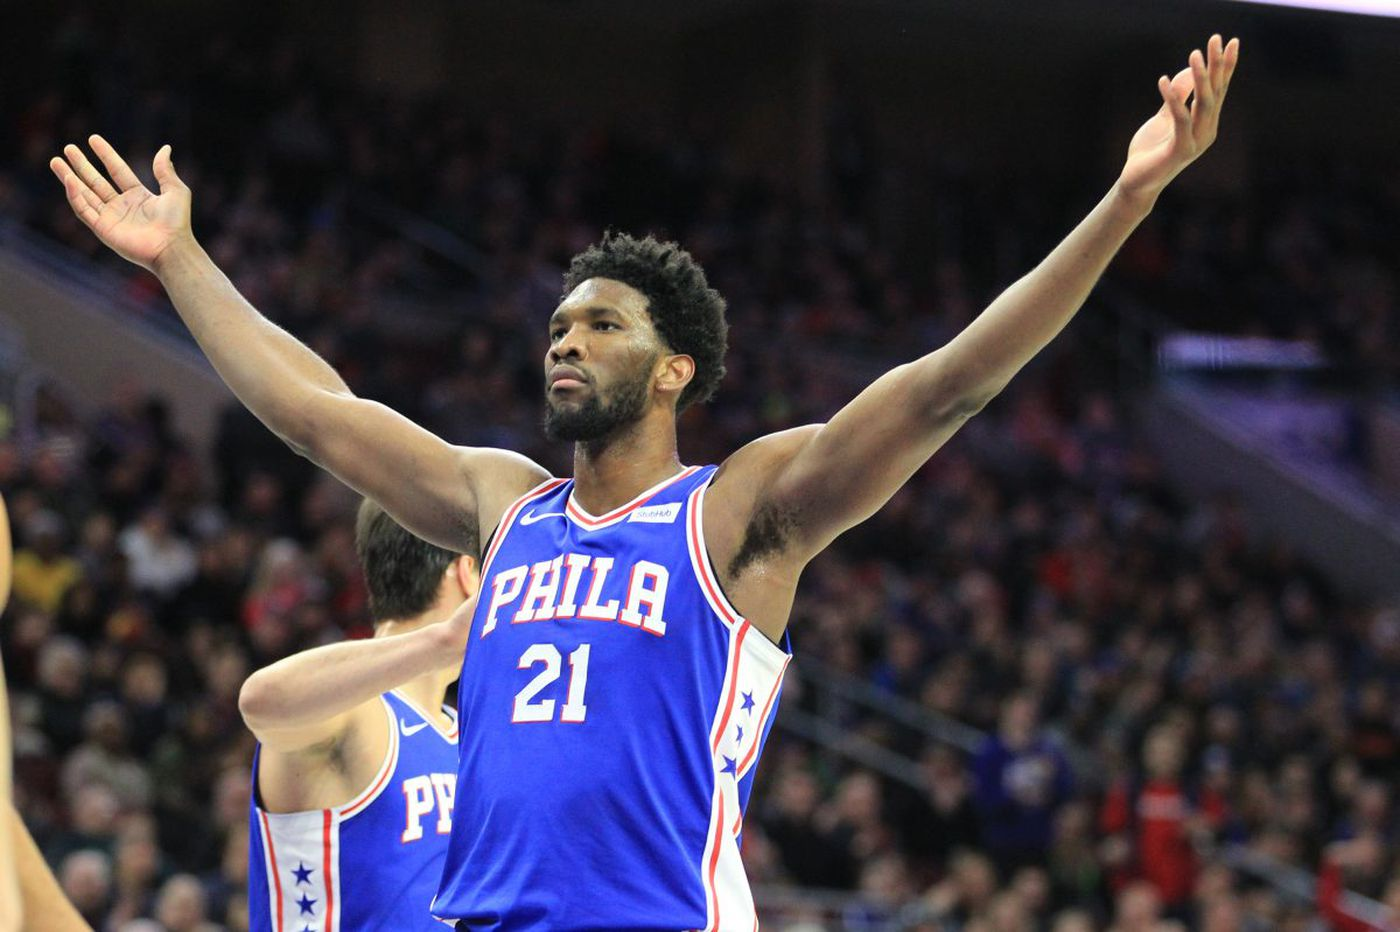 How to watch the Celtics-Sixers London game online, live streaming and on TV